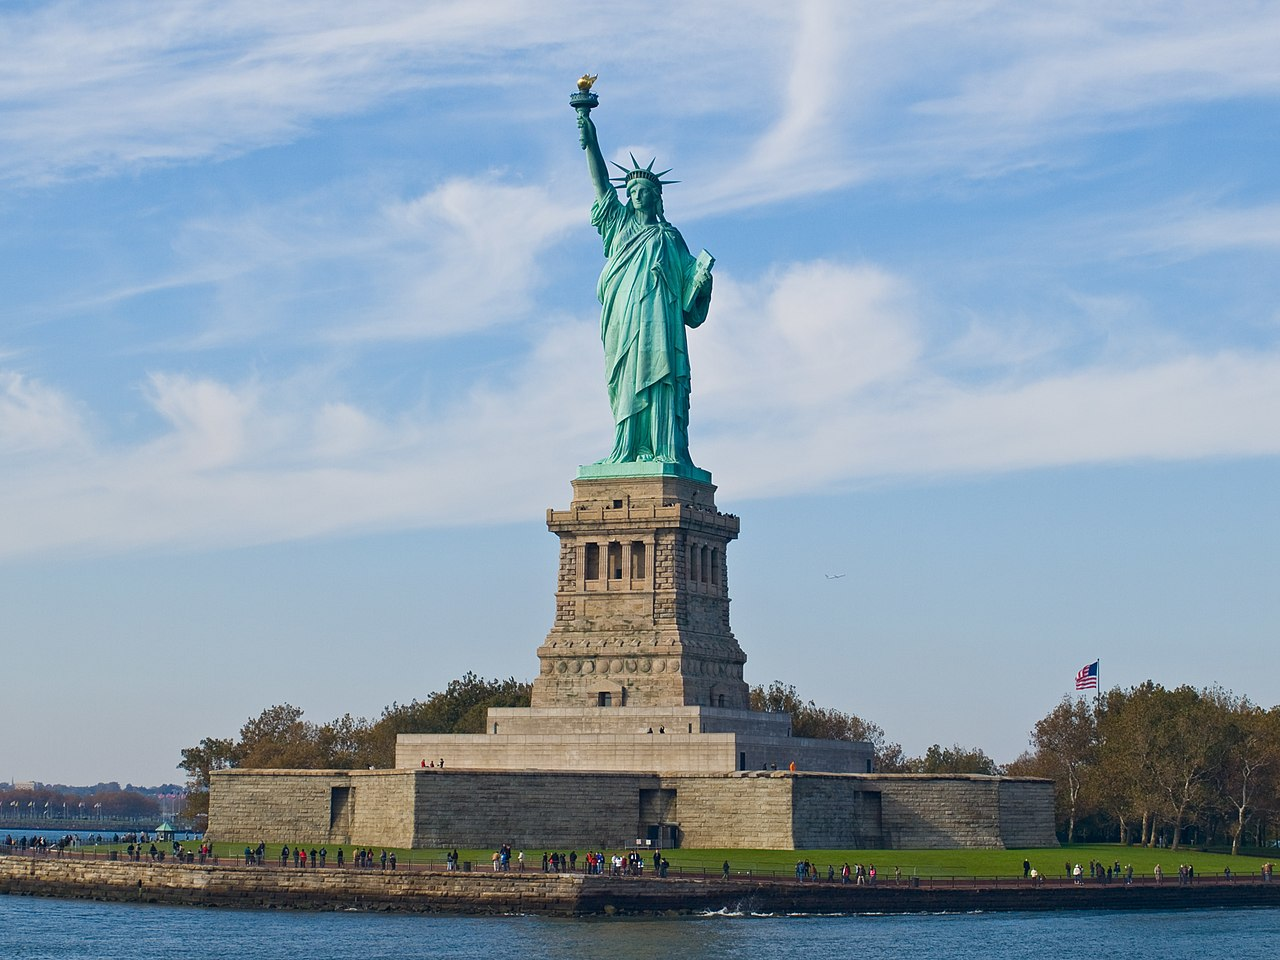 1280px-Statue_of_Liberty,_NY